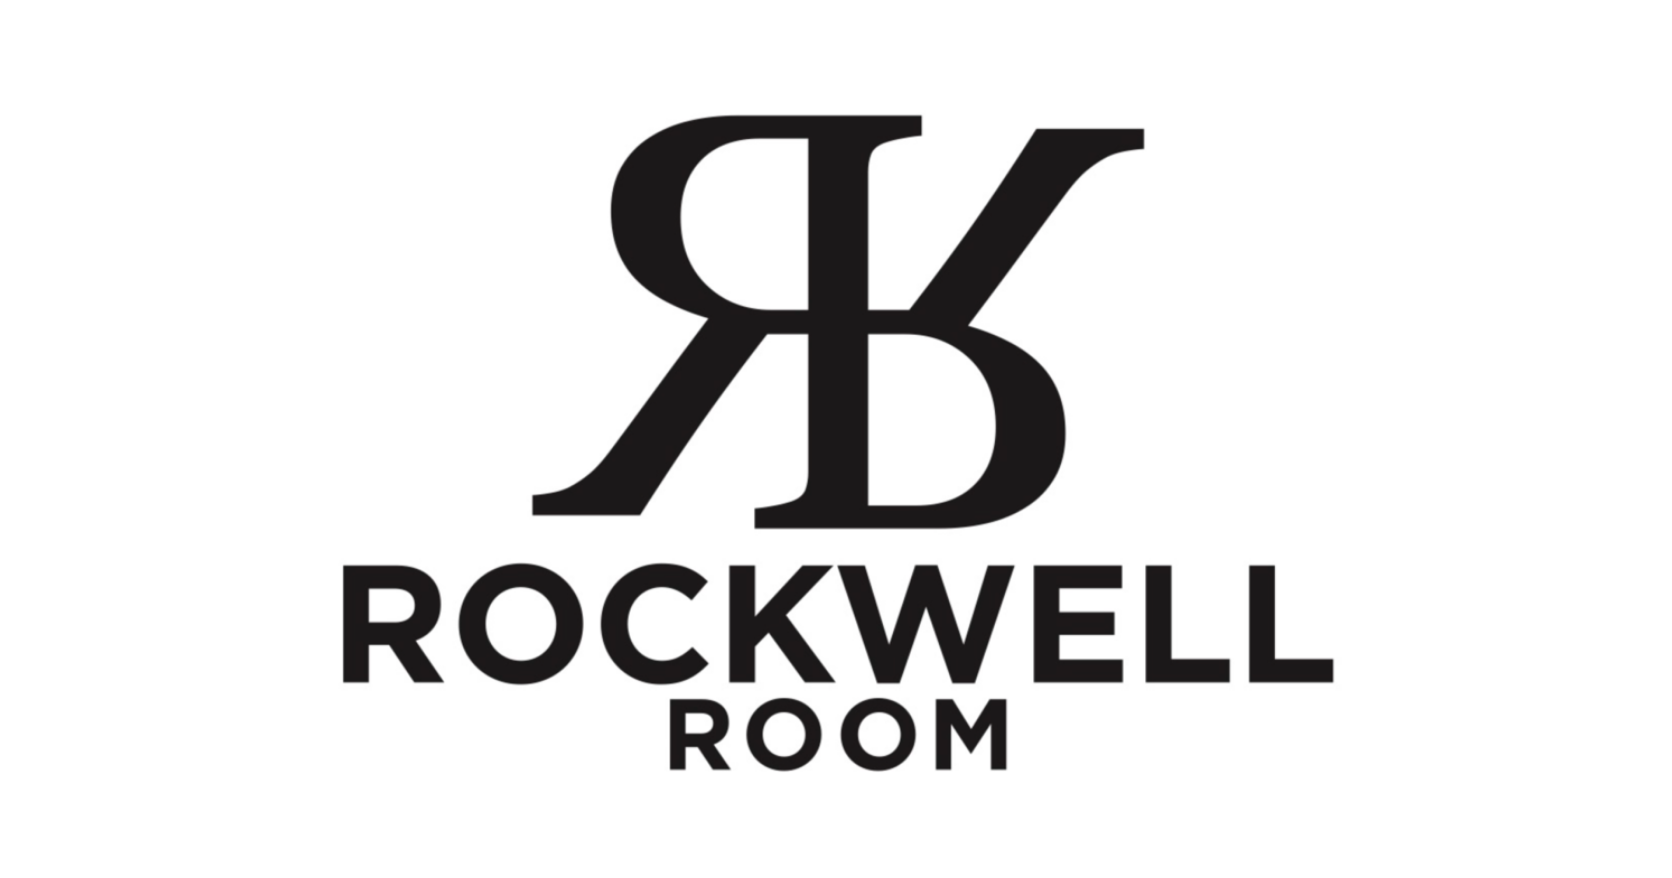 The rockwell room